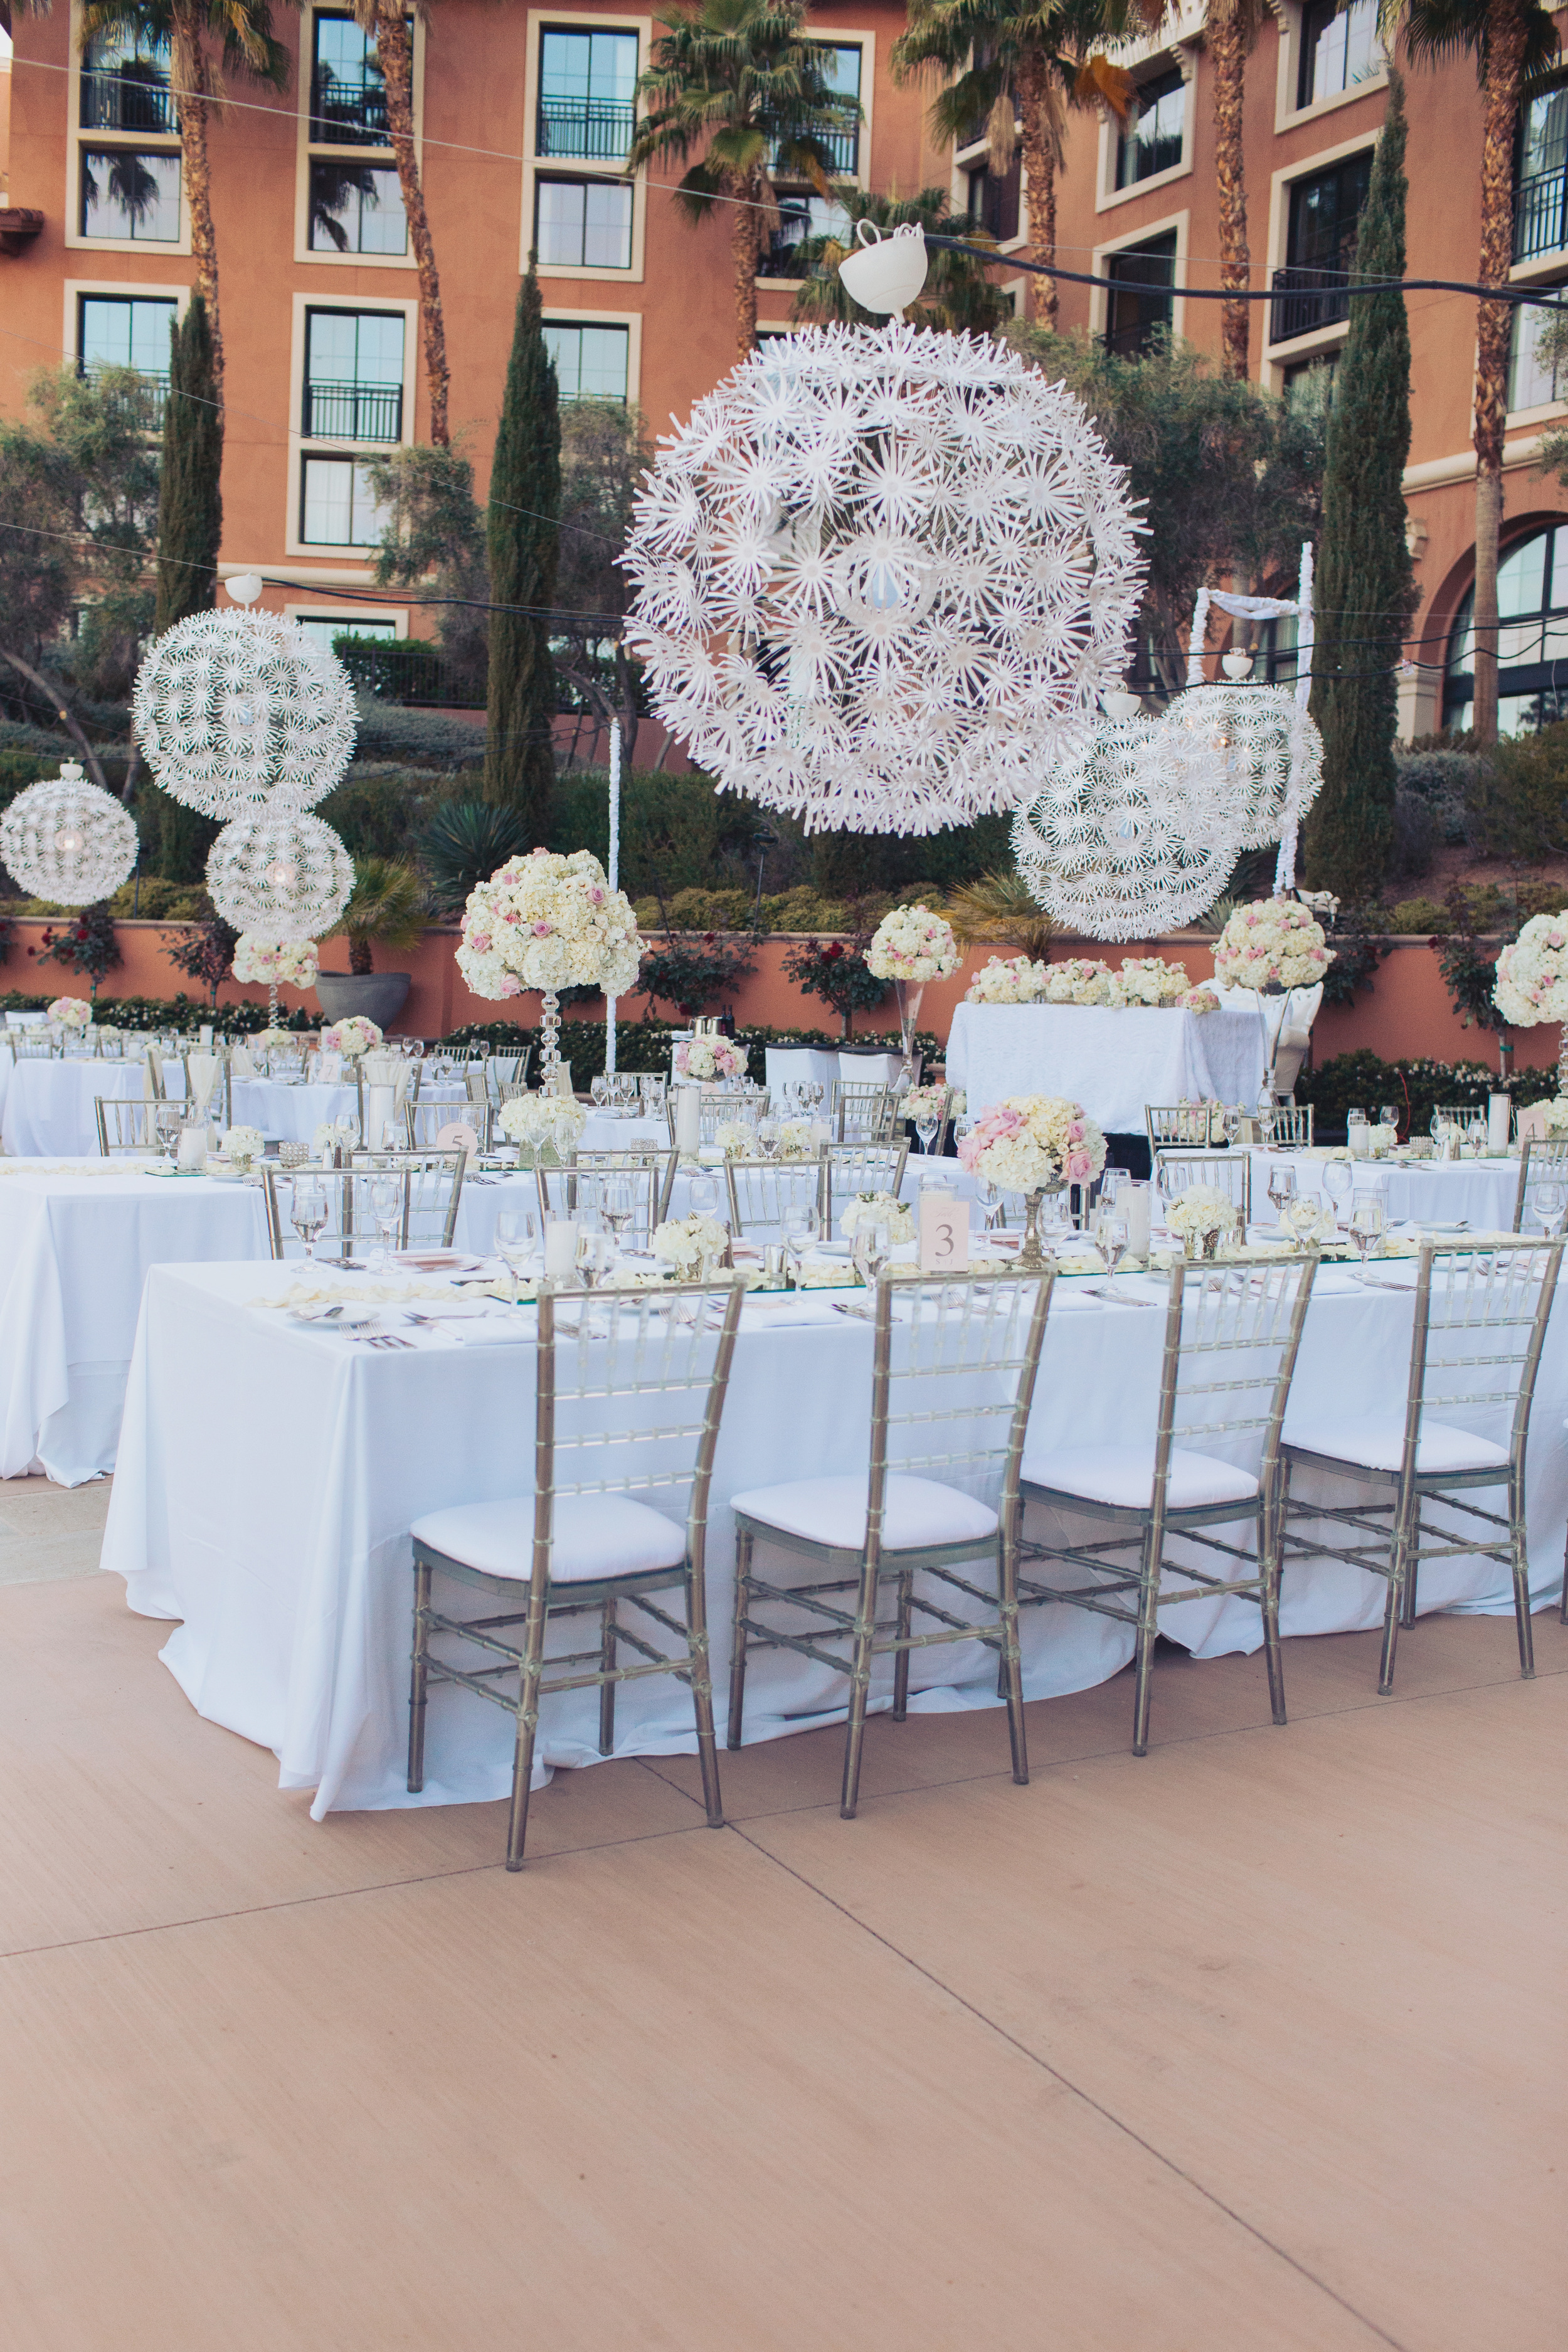 Long banquet tables were dressed with White Duping linens topped with mirrored table runners, high and low white and blush centerpieces, and scattered candles. Lucite Chiavari Chairs with ivory cushions surrounded the tables, and pashminas were placed for the ladies if they felt a chill. Las Vegas Wedding Planner Andrea Eppolito   Wedding at Lake Las Vegas   White and Blu  sh and Grey Wedding